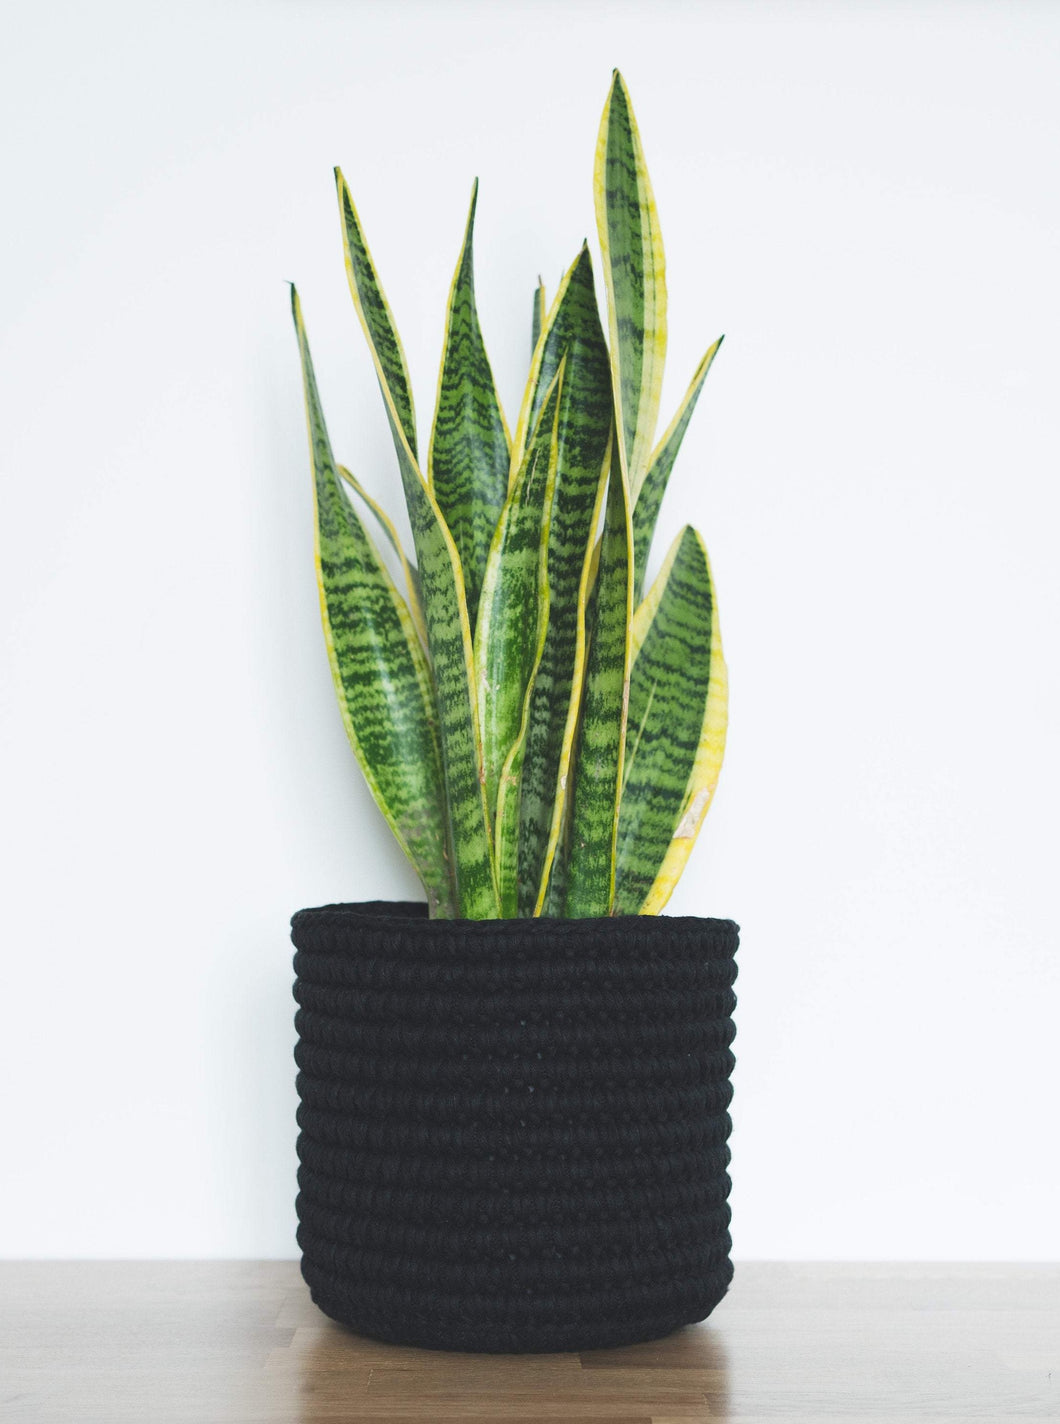 Medium eco plant pot - black - Knttd coloured handmade plant pot cover made from recycled cotton yarn with watertight inner pot made from recycled plastic